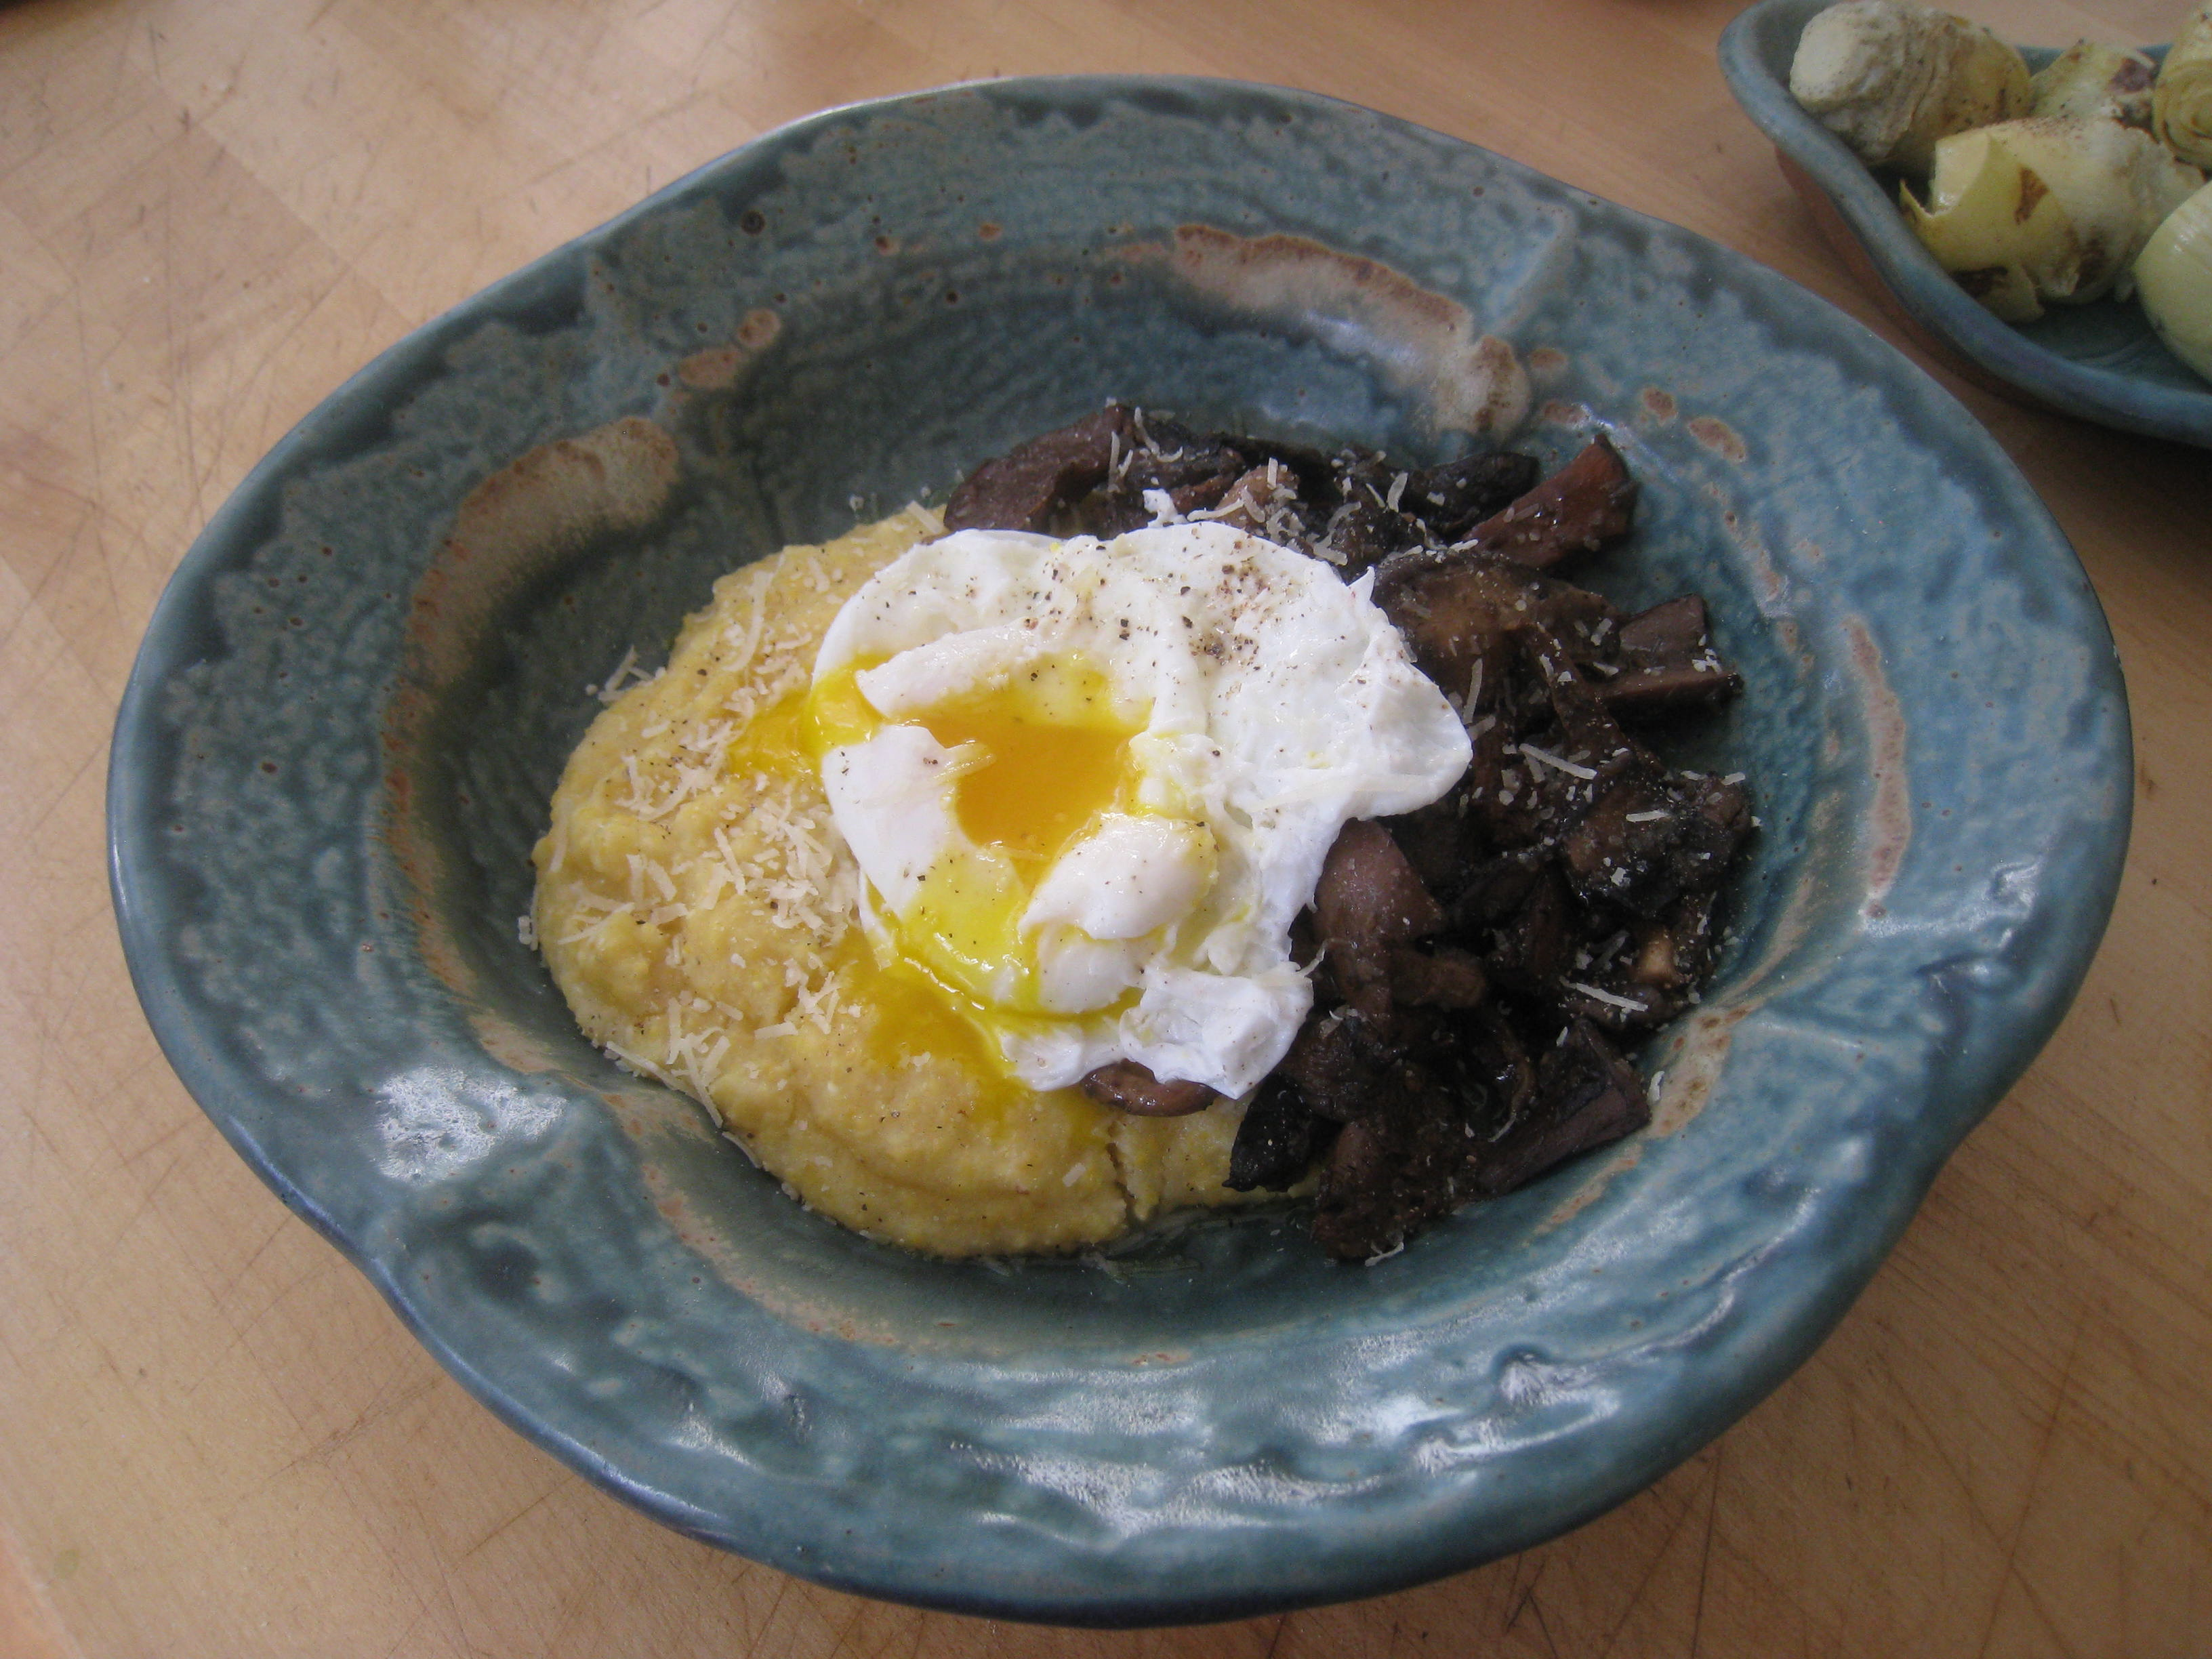 Jody Adams' mushroom fricassee, served with polenta and a poached egg